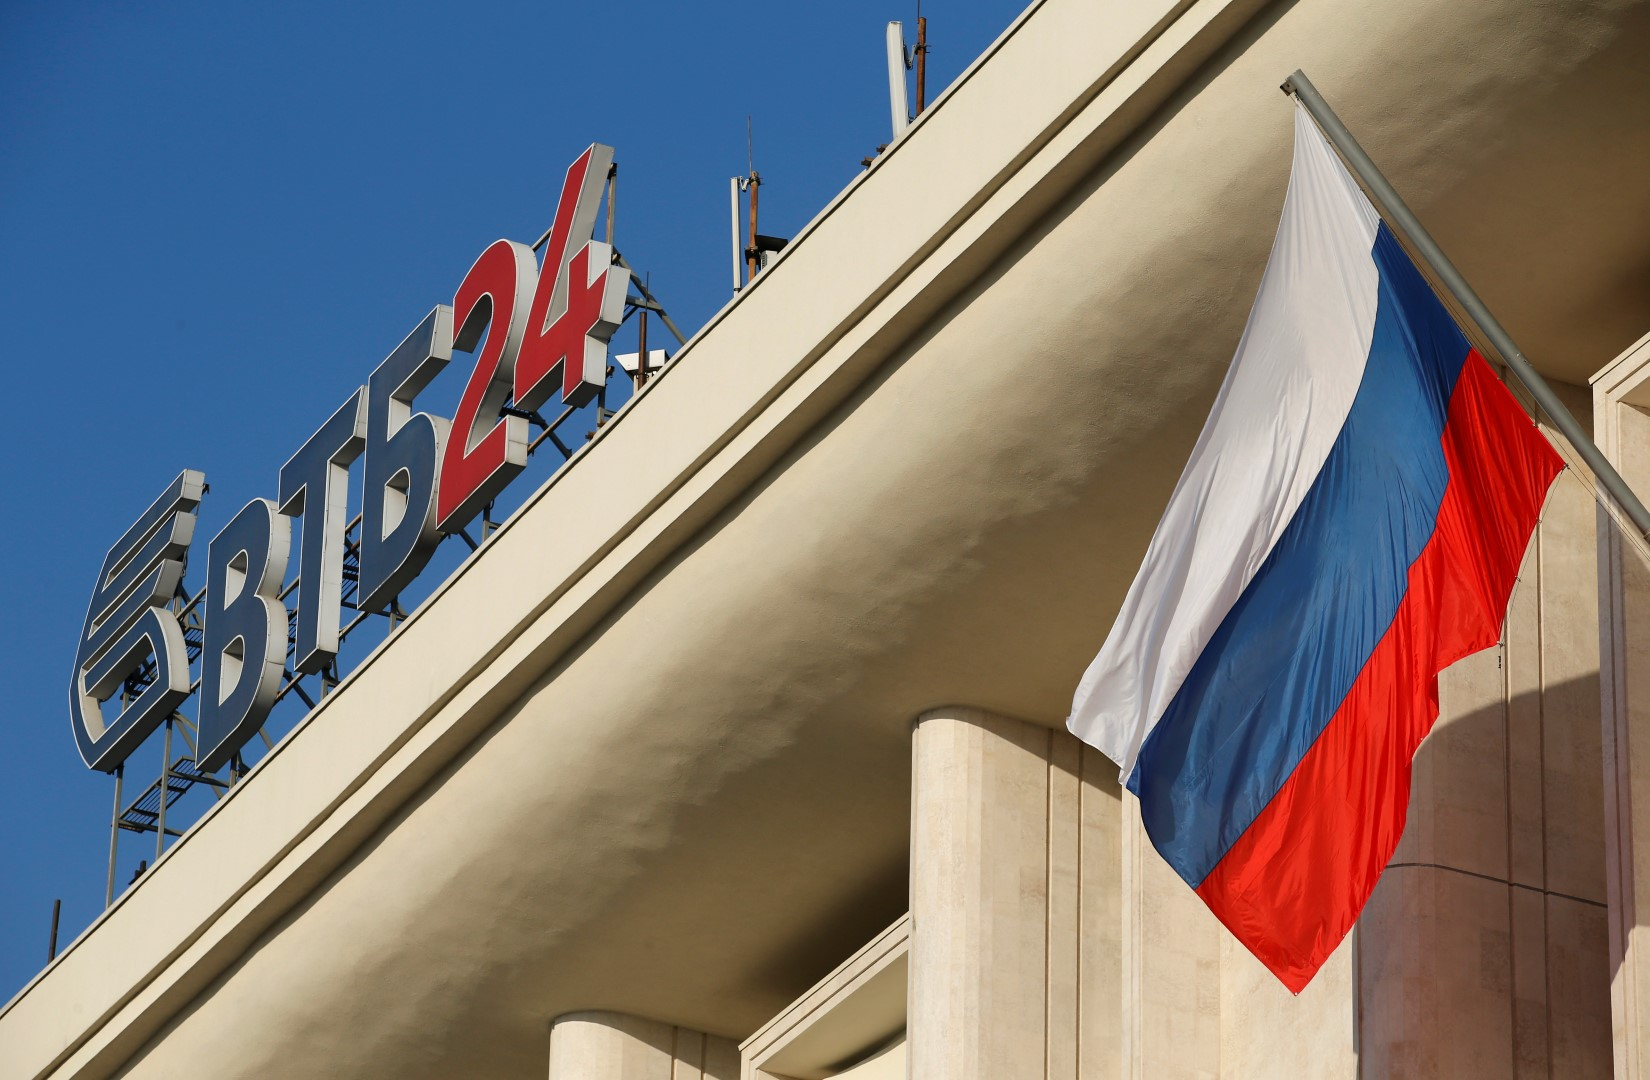 The logo of VTB Bank is displayed on the roof of a building, with a Russian national flag seen nearby, in Moscow, November 20, 2014. Russia's second-largest bank VTB said on Thursday its third-quarter net profit fell 98 percent year-on-year, dragged lower by higher provisions for bad loans and an economic slowdown. REUTERS/Maxim Zmeyev (RUSSIA - Tags: BUSINESS LOGO) - RTR4EUSH